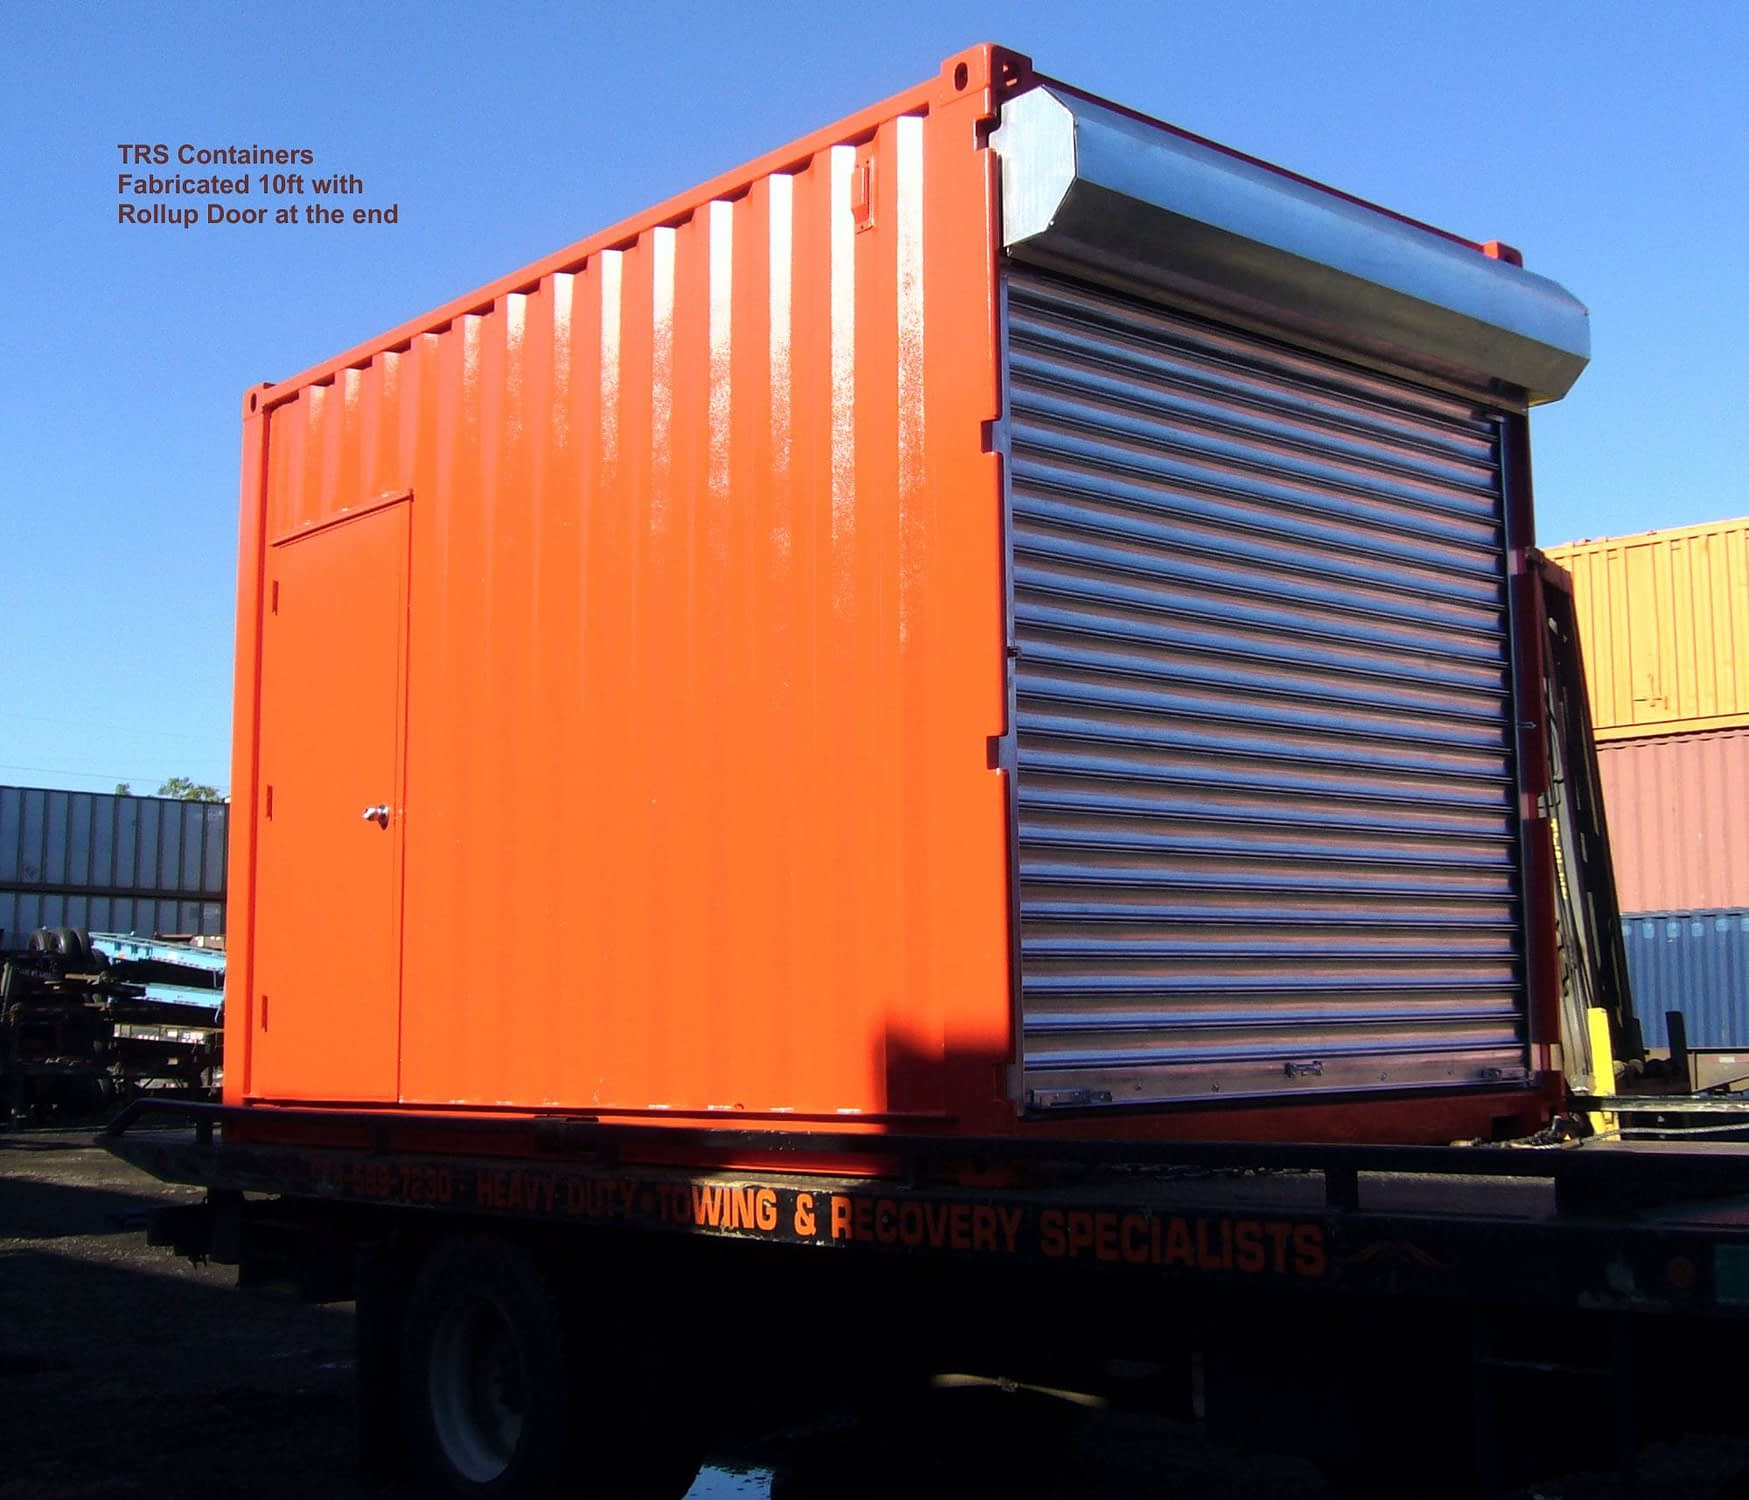 TRS Containers builds portable container workshops and welding stations